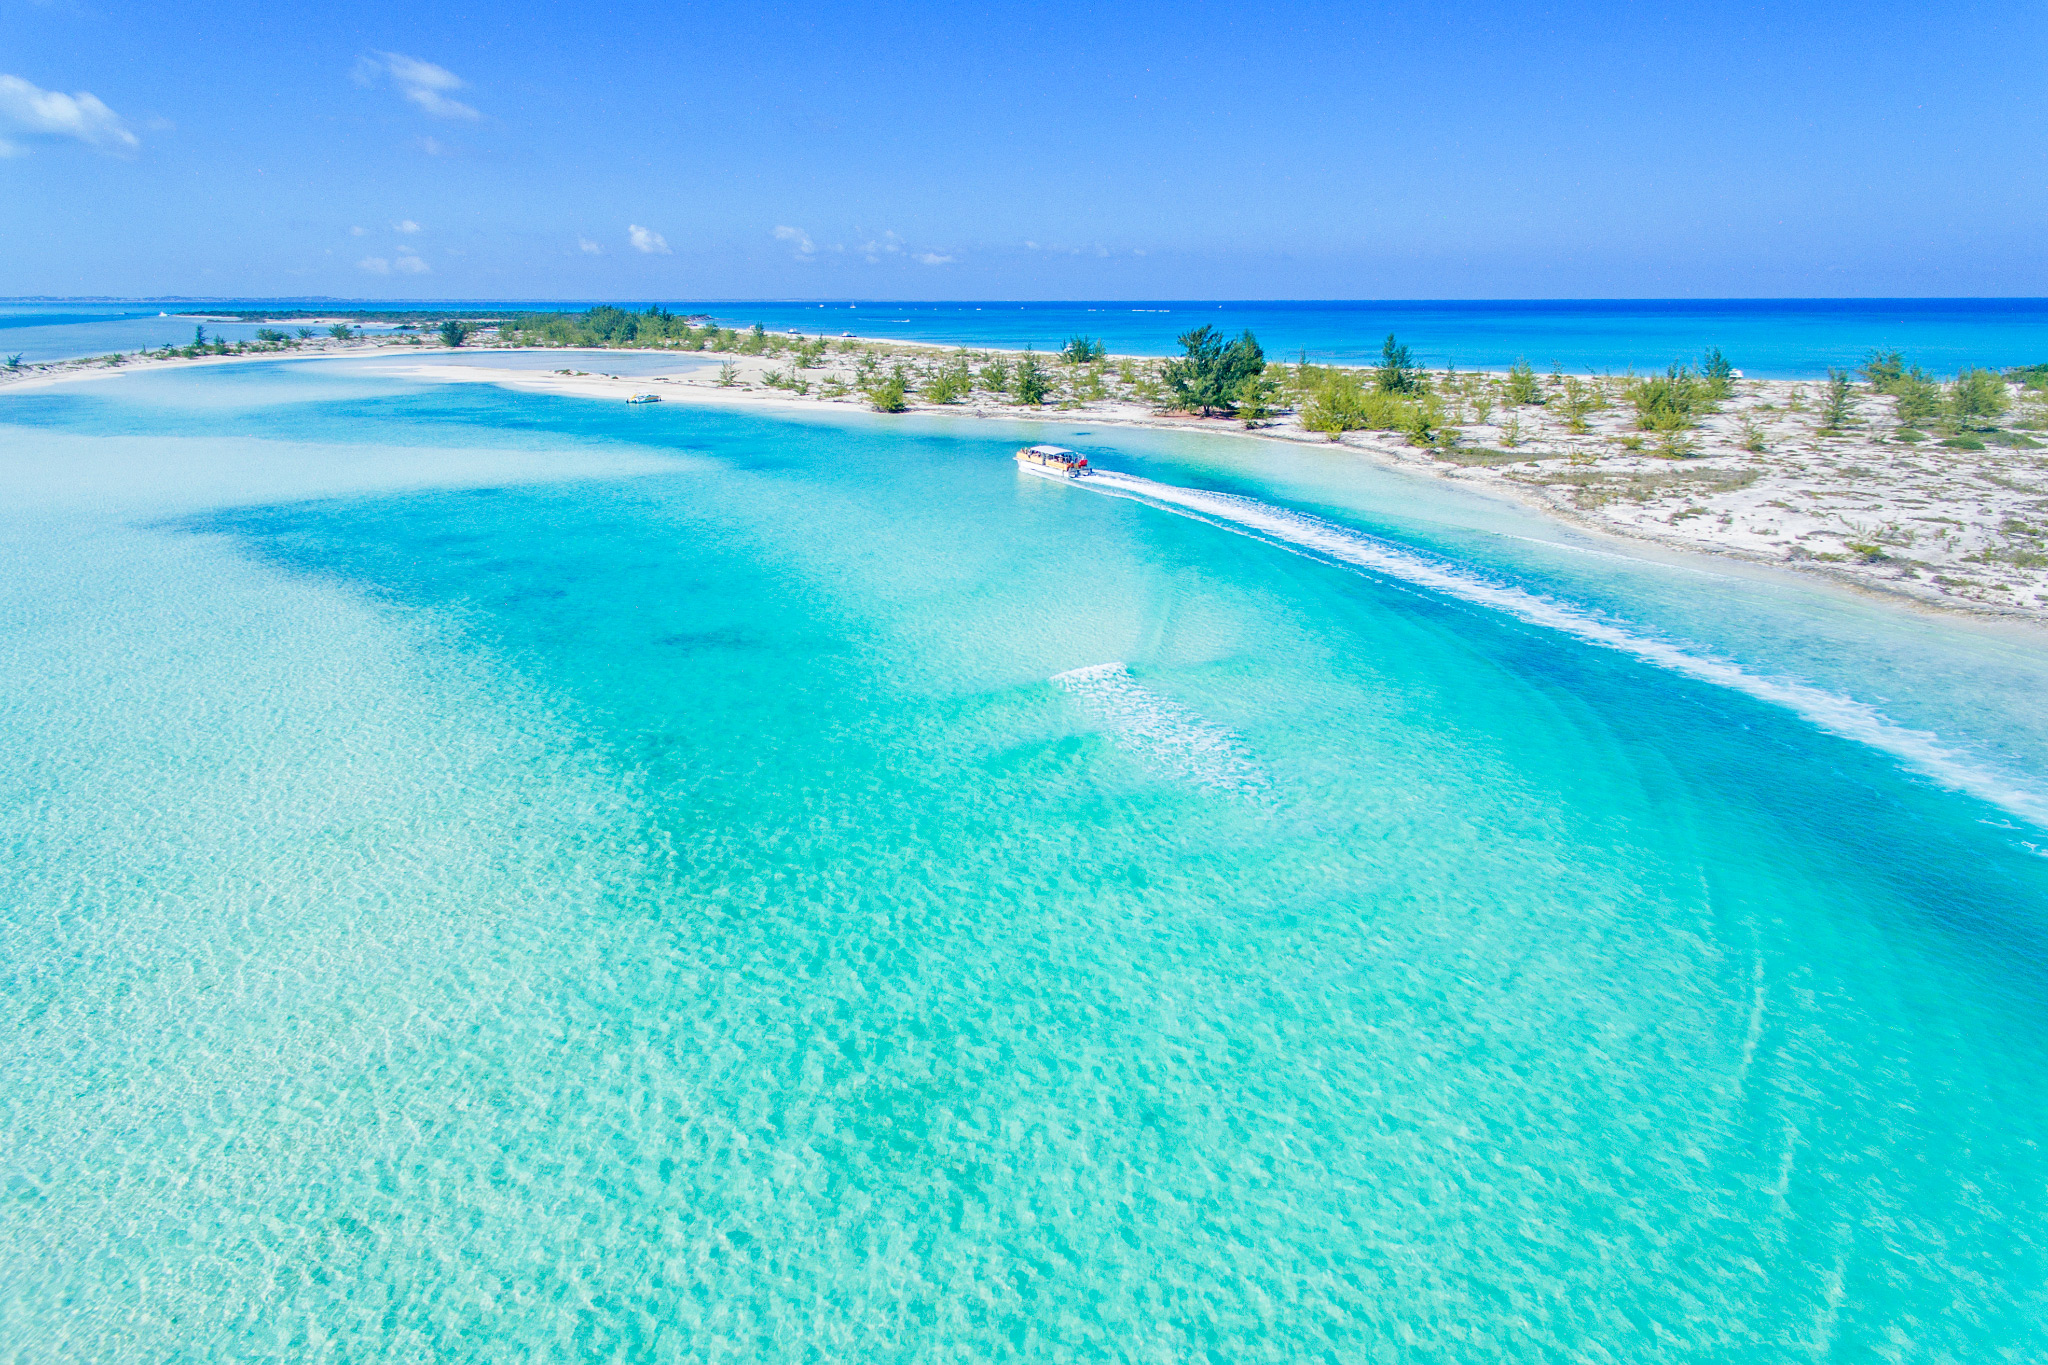 The Amazing Beaches Of The Turks And Caicos